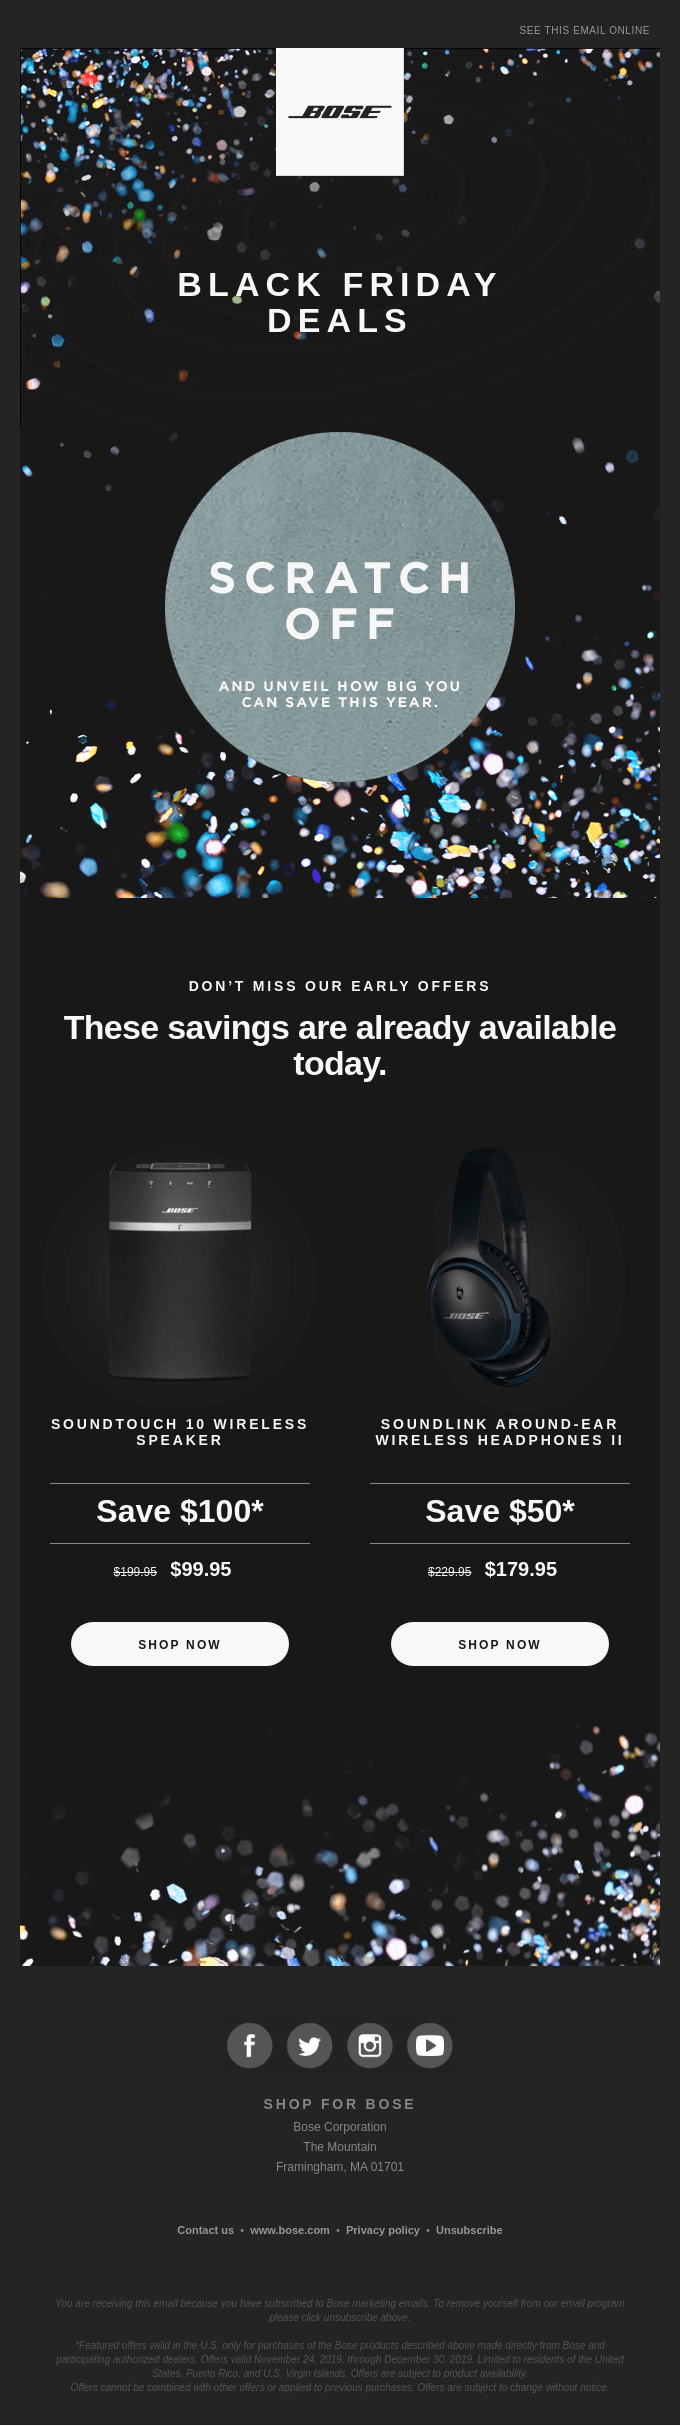 Black Friday offers are coming | Reveal your savings inside